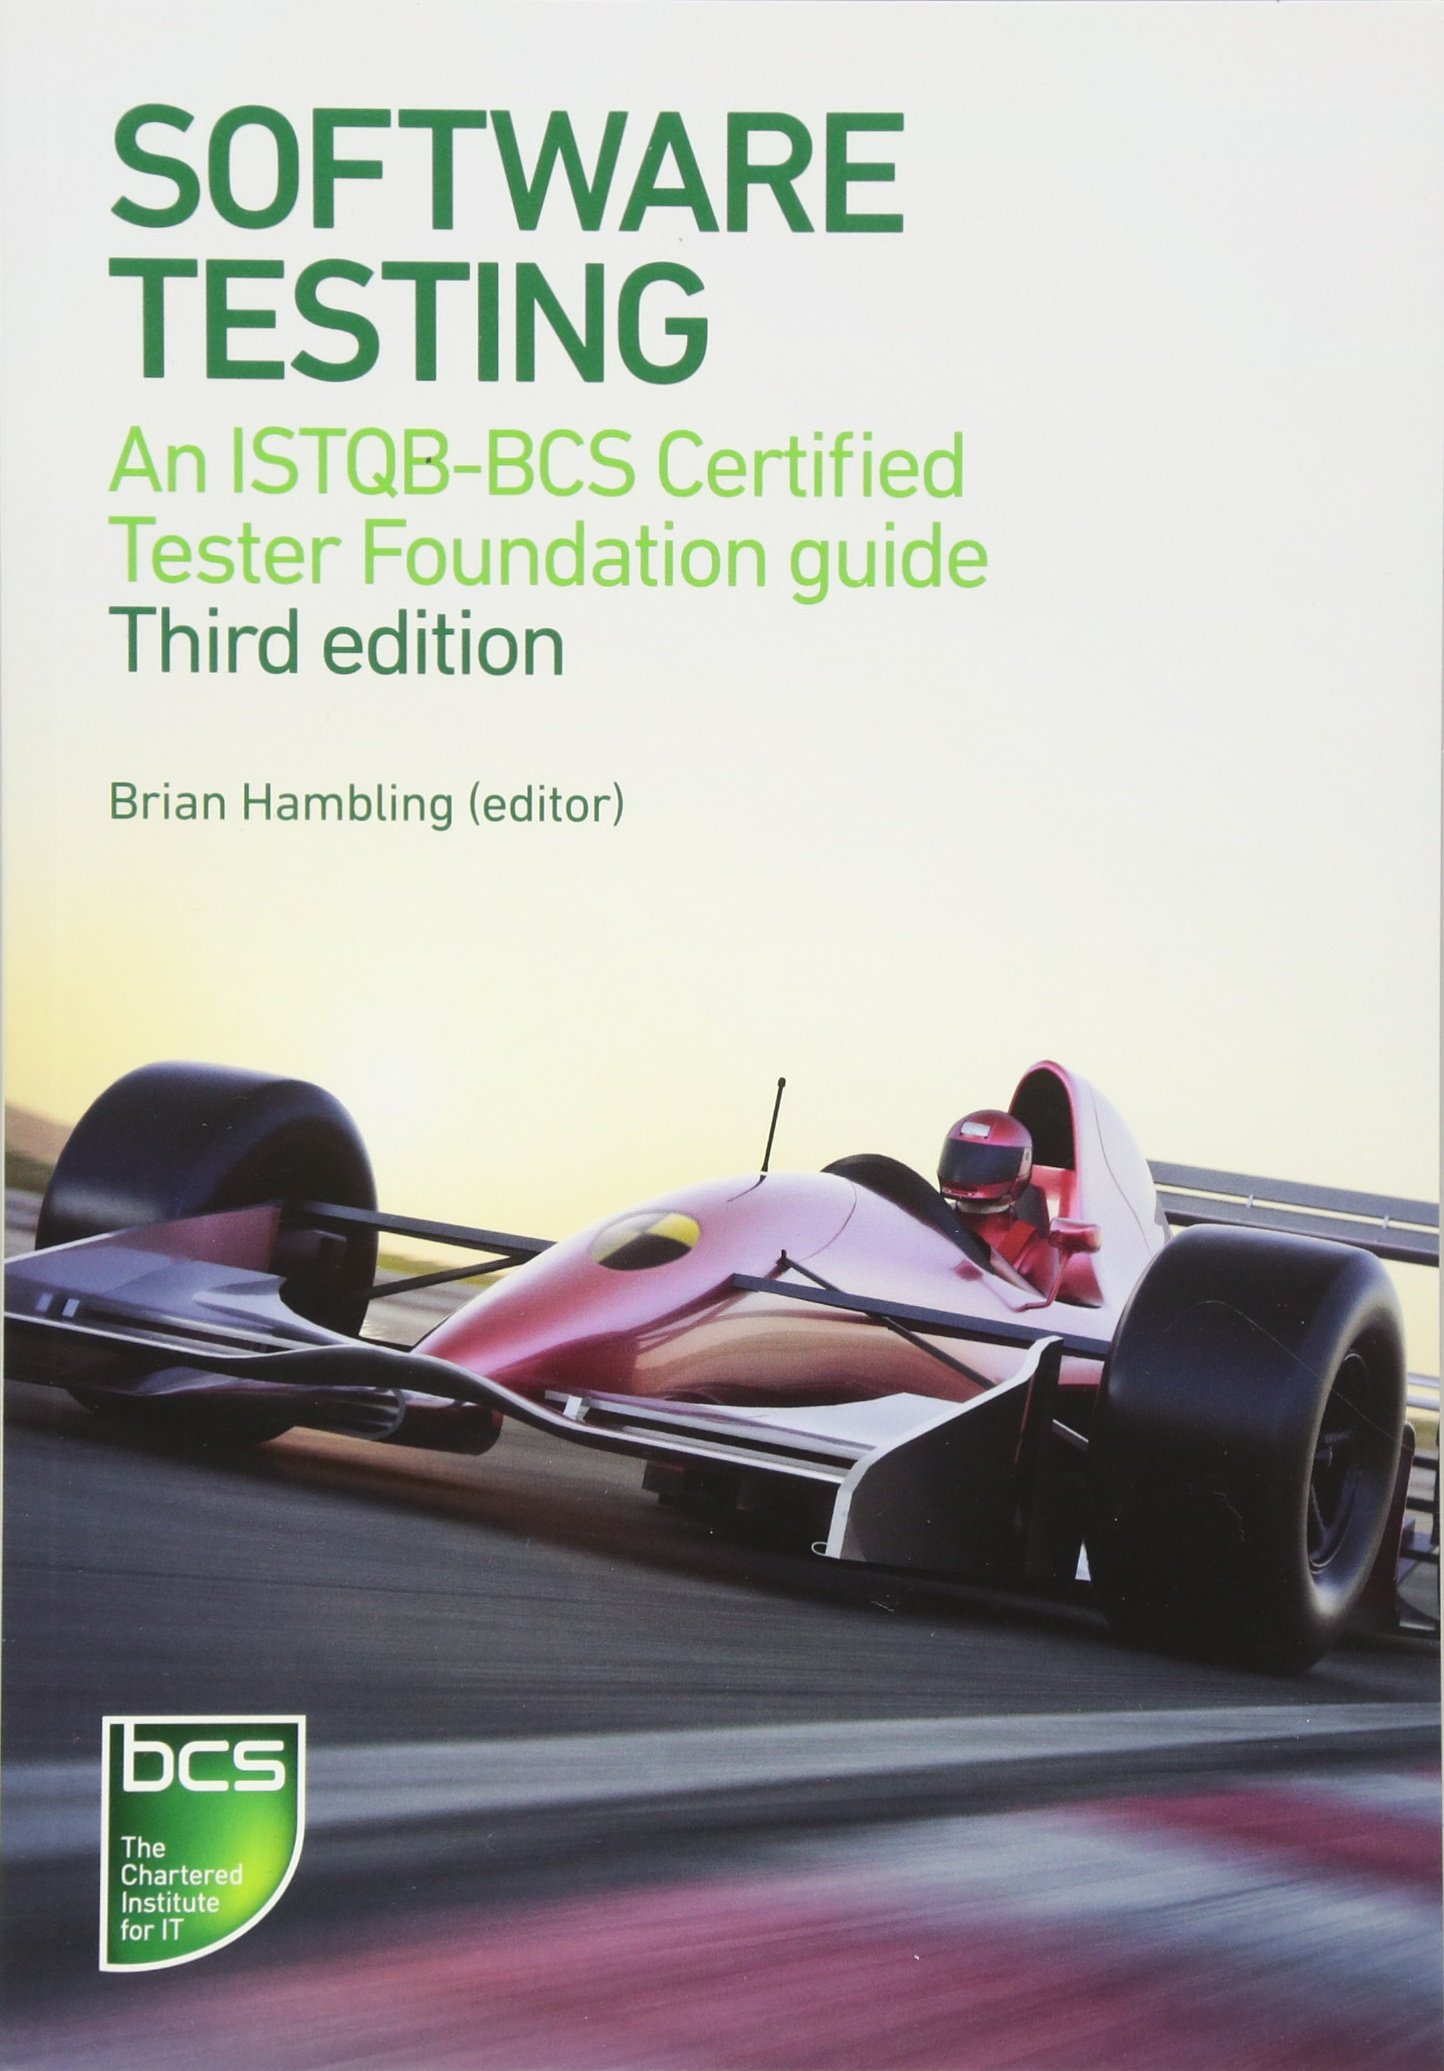 Software testing an istqb bcs certified tester foundation guide software testing an istqb bcs certified tester foundation guide 3rd ed amazon angelina samaroo geoff thompson brian hambling 9781780172996 1betcityfo Image collections